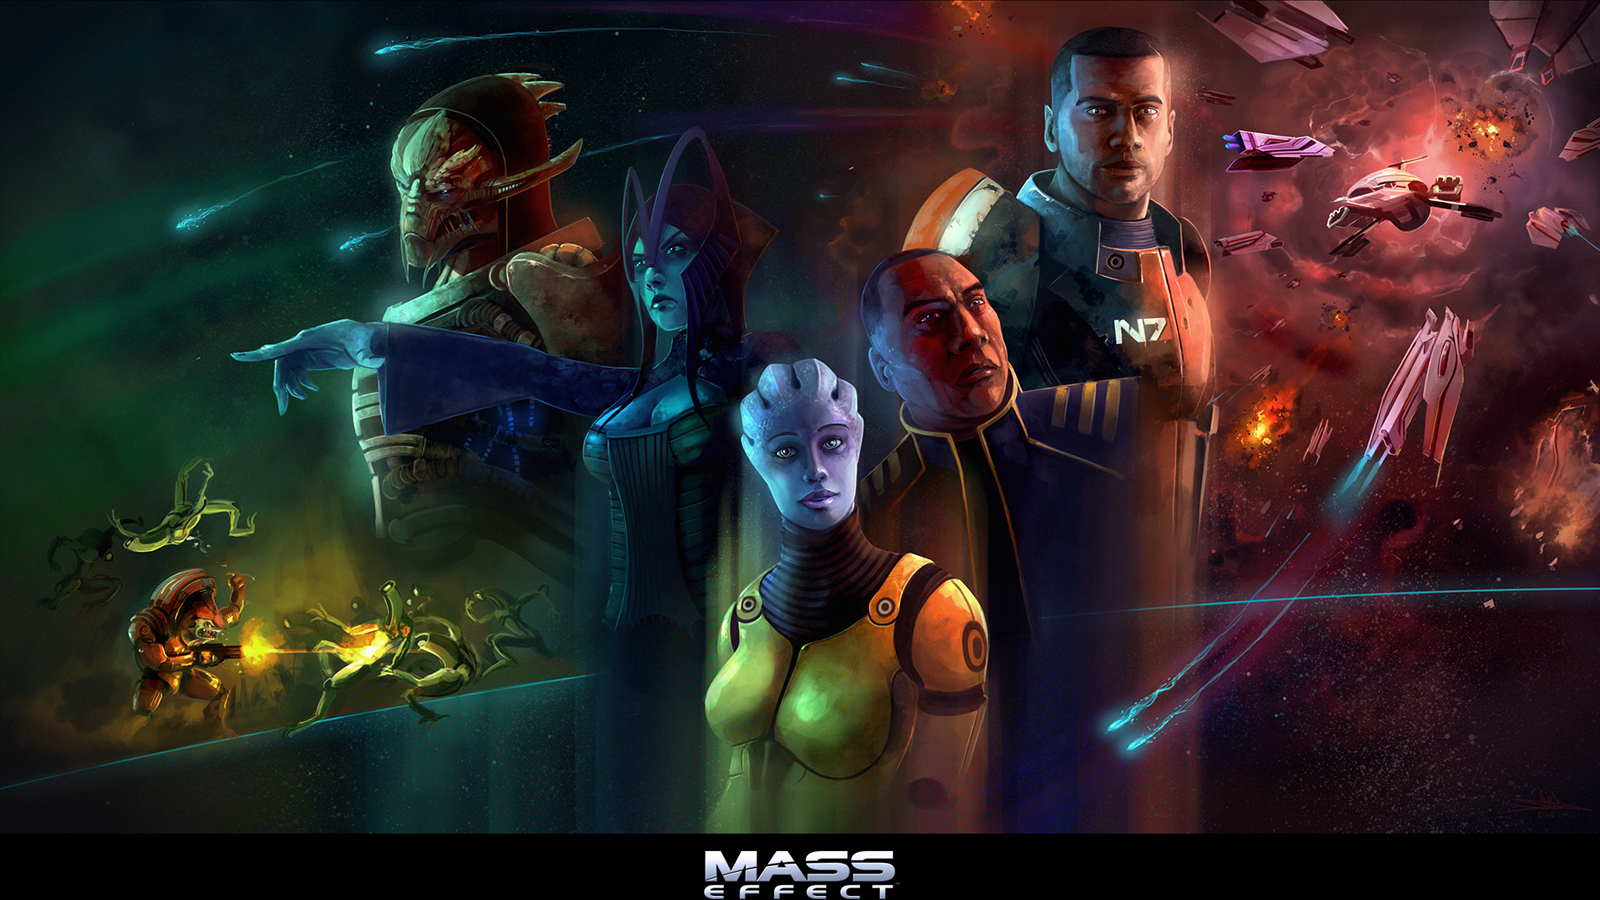 Art - Mass Effect Арт